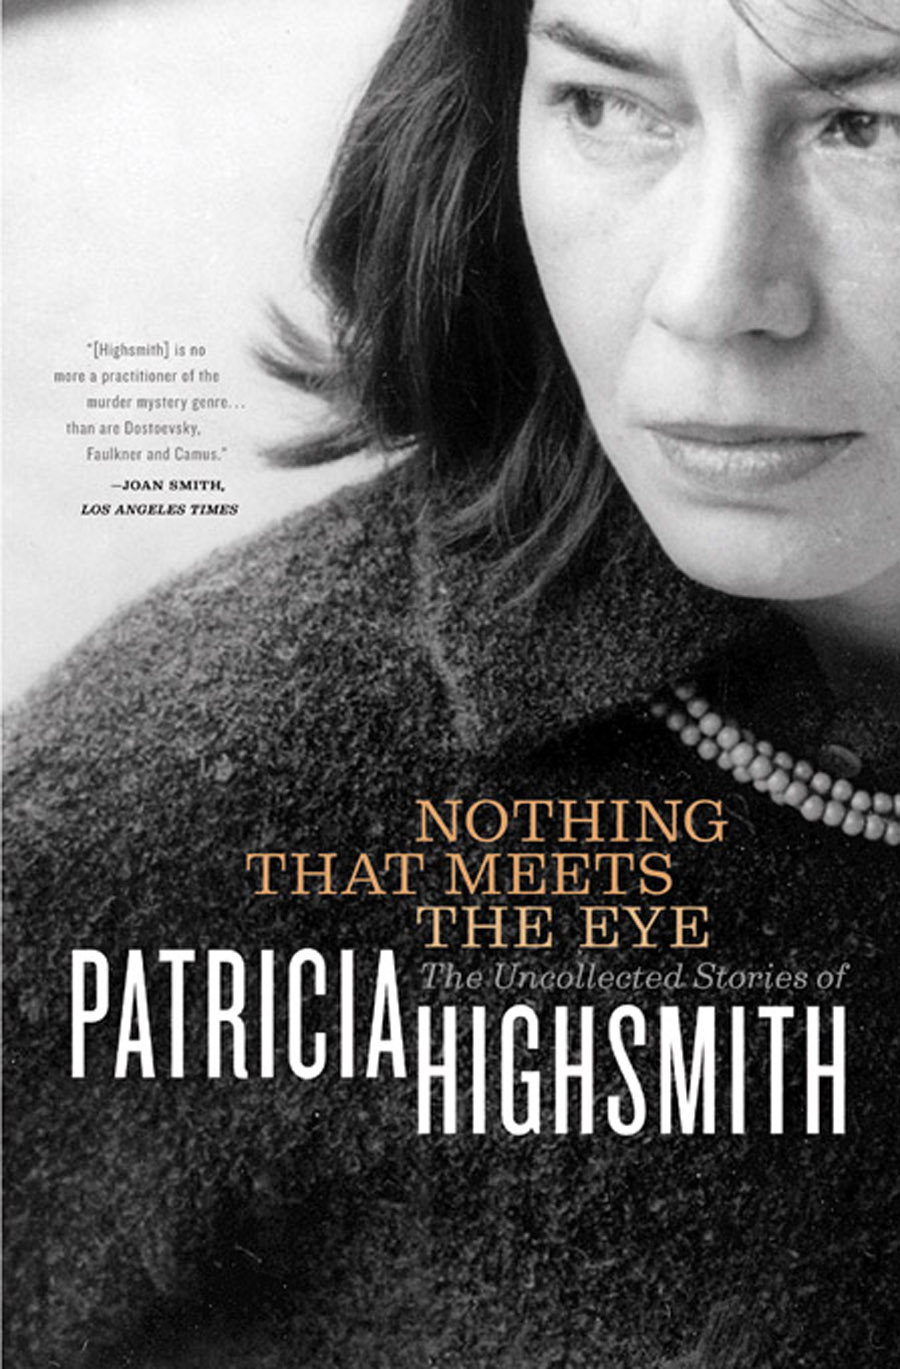 Nothing That Meets the Eye: The Uncollected Stories of Patricia Highsmith By: Patricia Highsmith